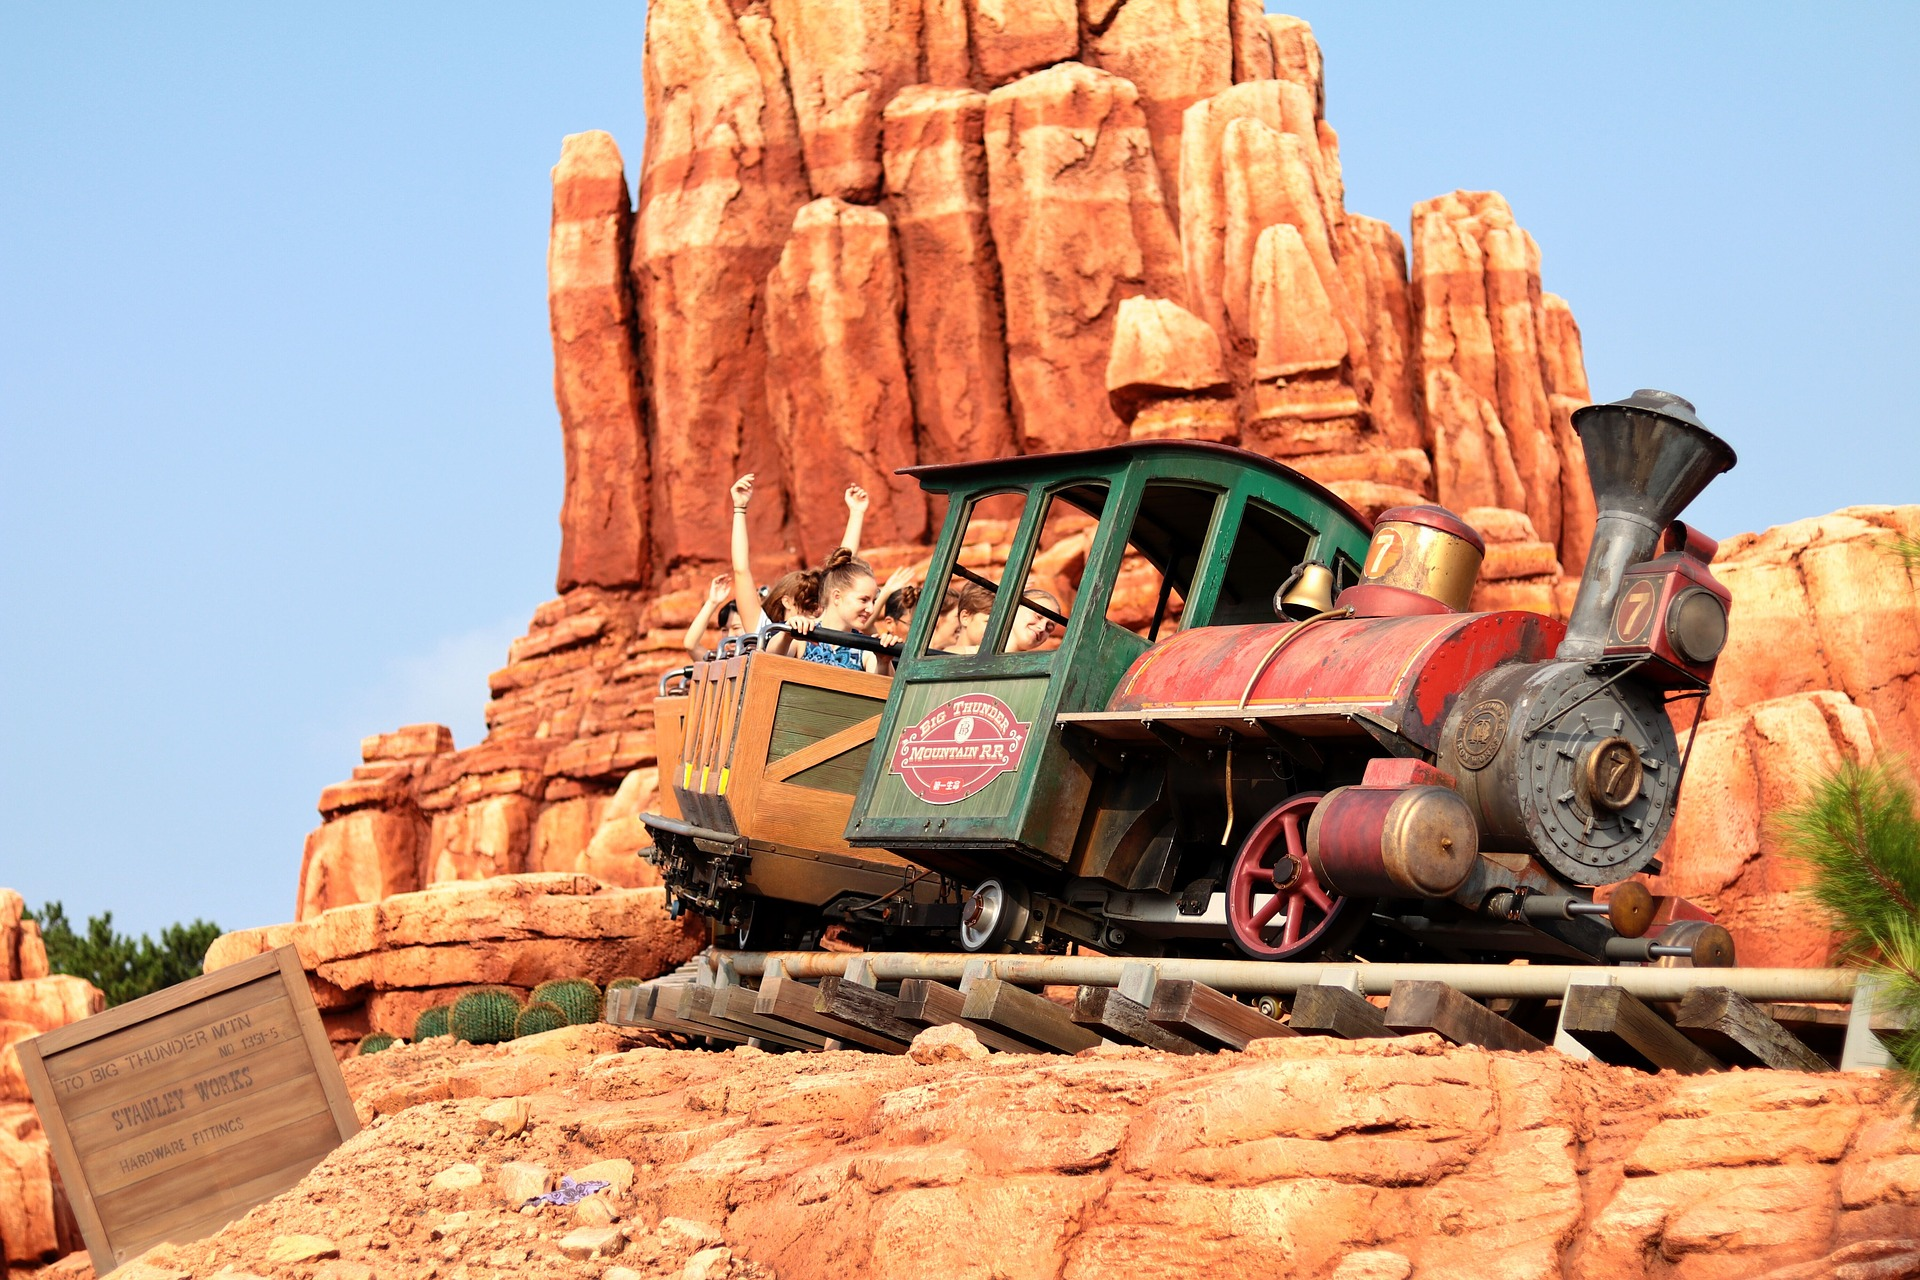 The Big Thunder Mountain Railroad could be one of the scariest rides at Disneyland.